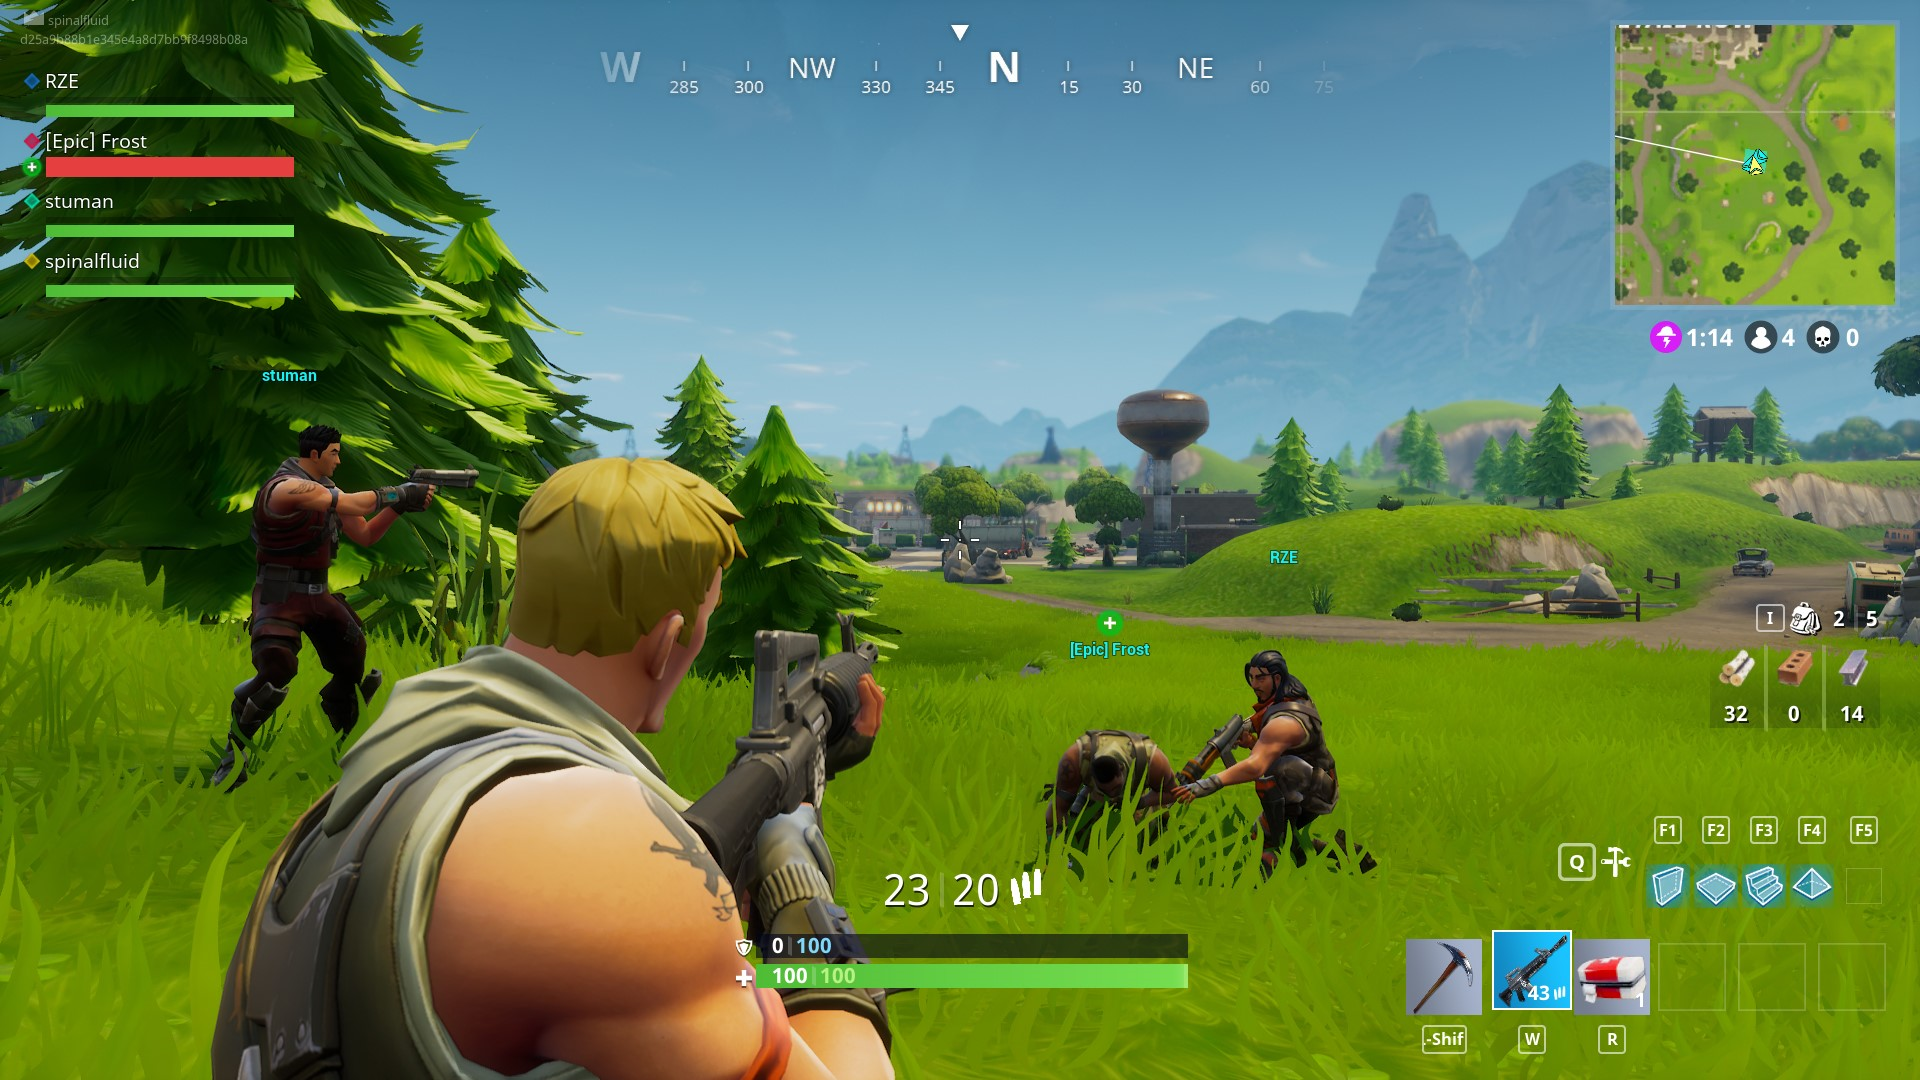 fortnite account limited edition pve - fortnite pve accounts